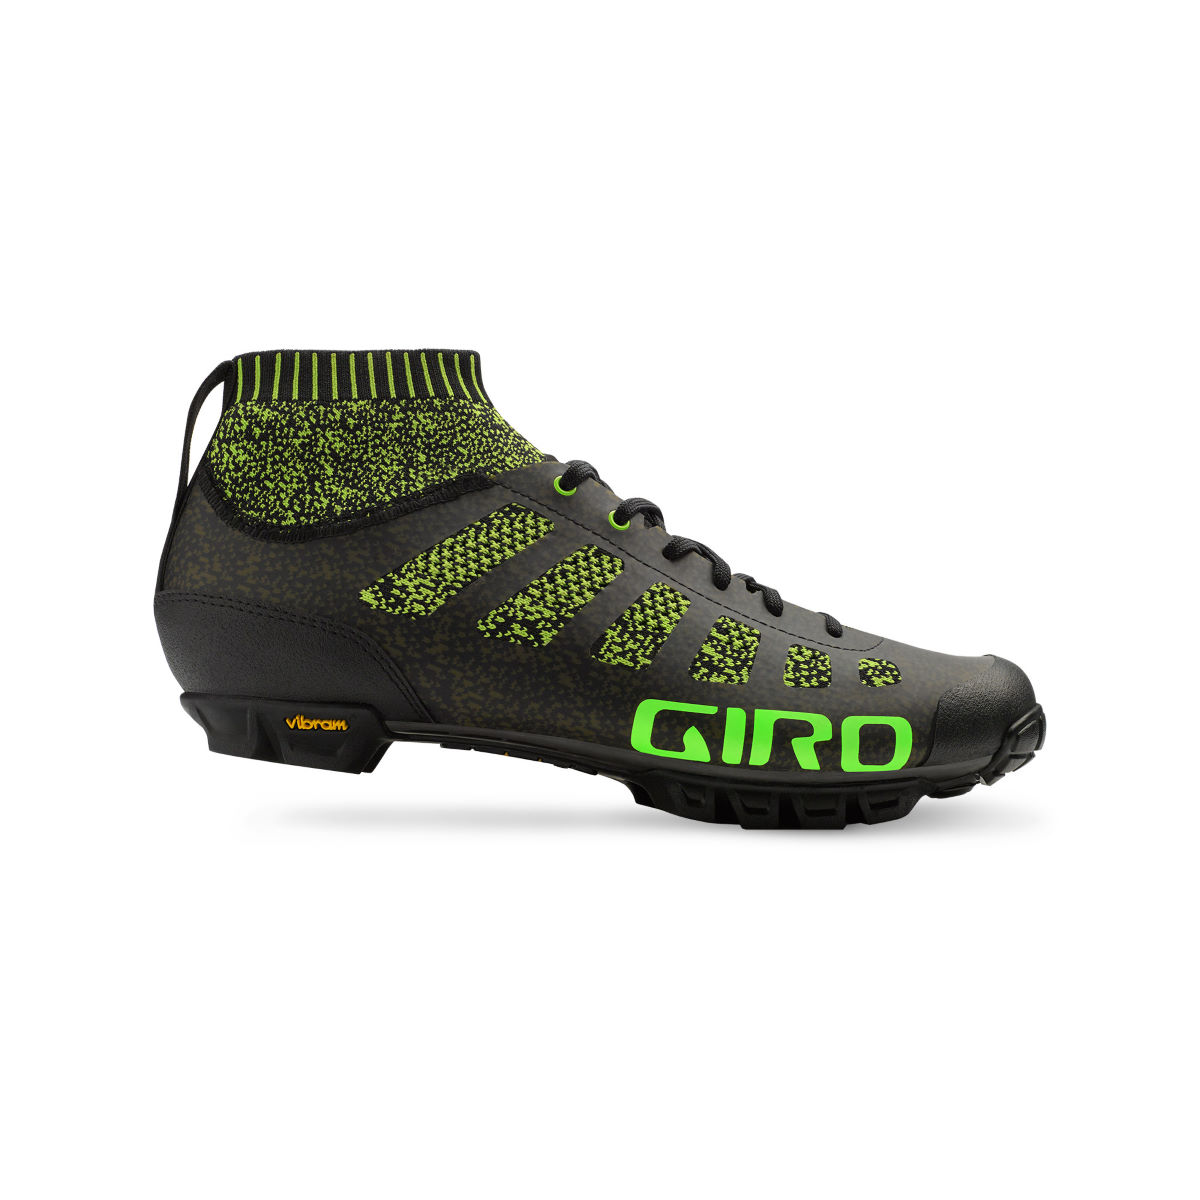 Giro Giro Empire VR70 Knit Off Road Shoe   Cycling Shoes